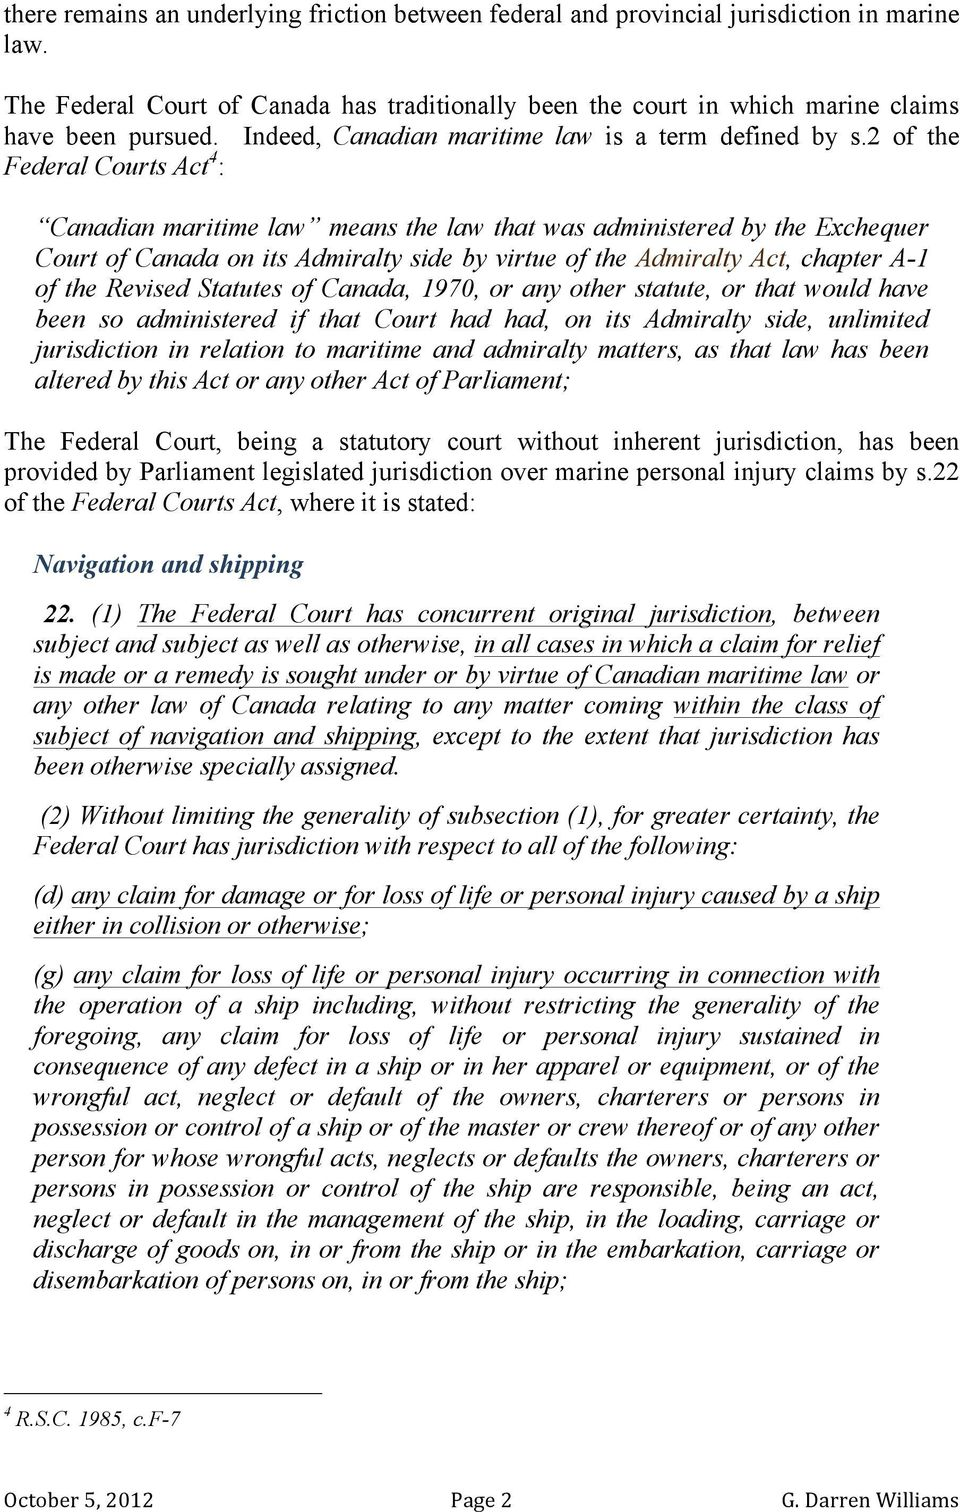 2 of the Federal Courts Act 4 : Canadian maritime law means the law that was administered by the Exchequer Court of Canada on its Admiralty side by virtue of the Admiralty Act, chapter A-1 of the